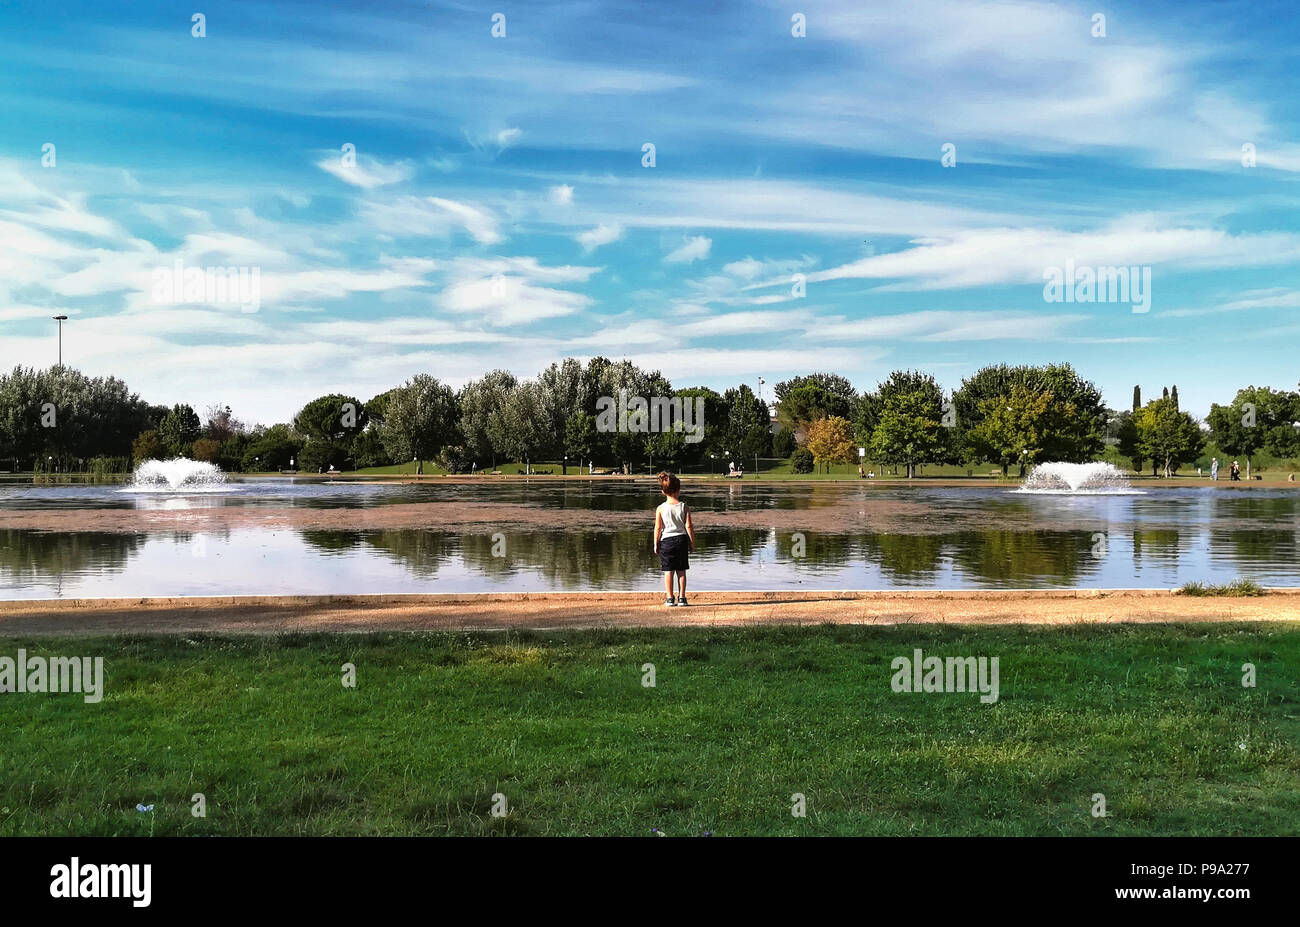 Child rear view looking at tranquil scene lake in urban green park in spring season - Stock Image